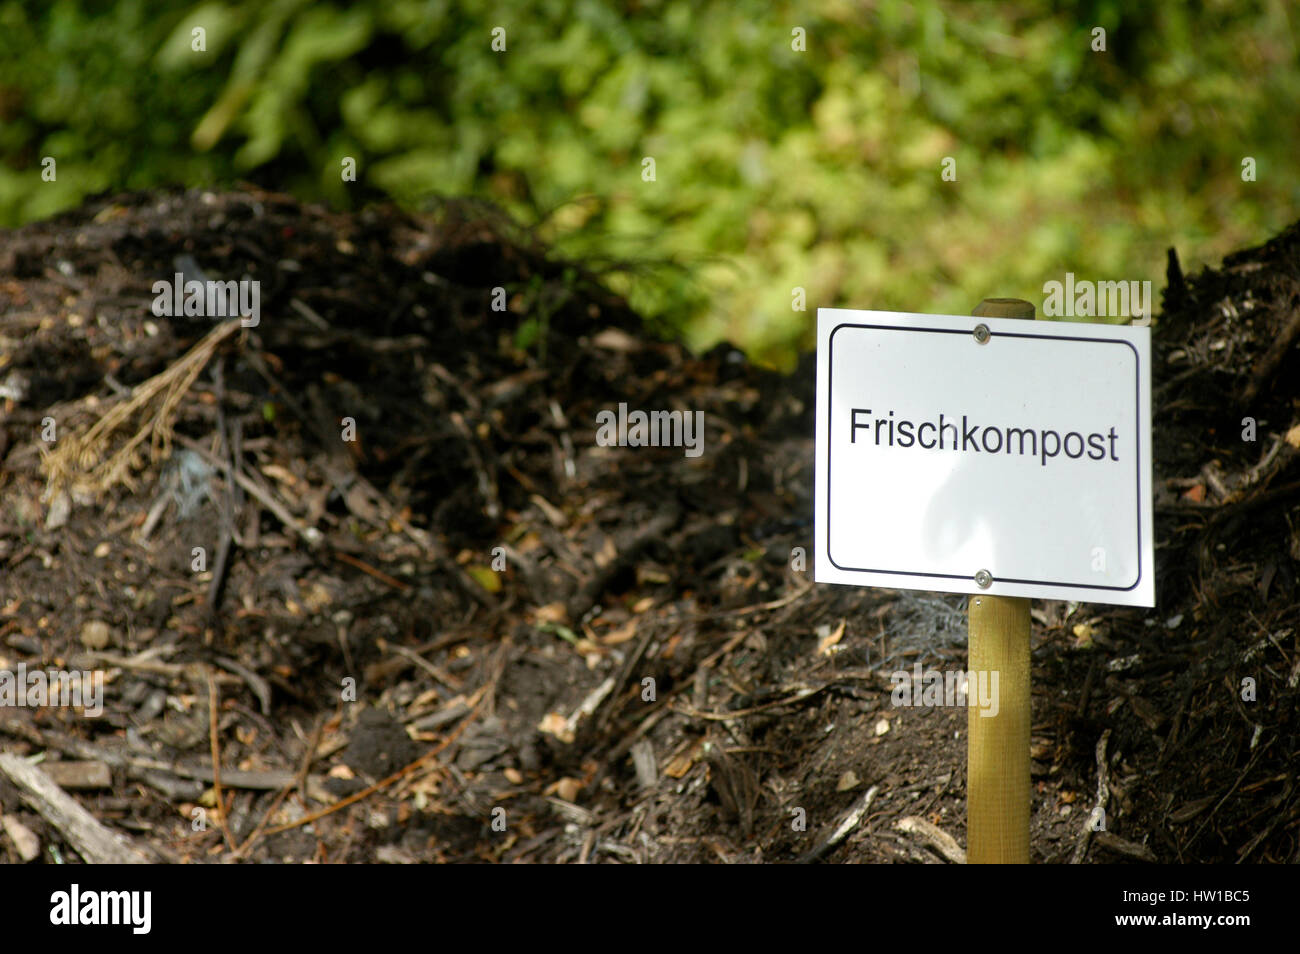 kompost haufen photos & kompost haufen images - alamy